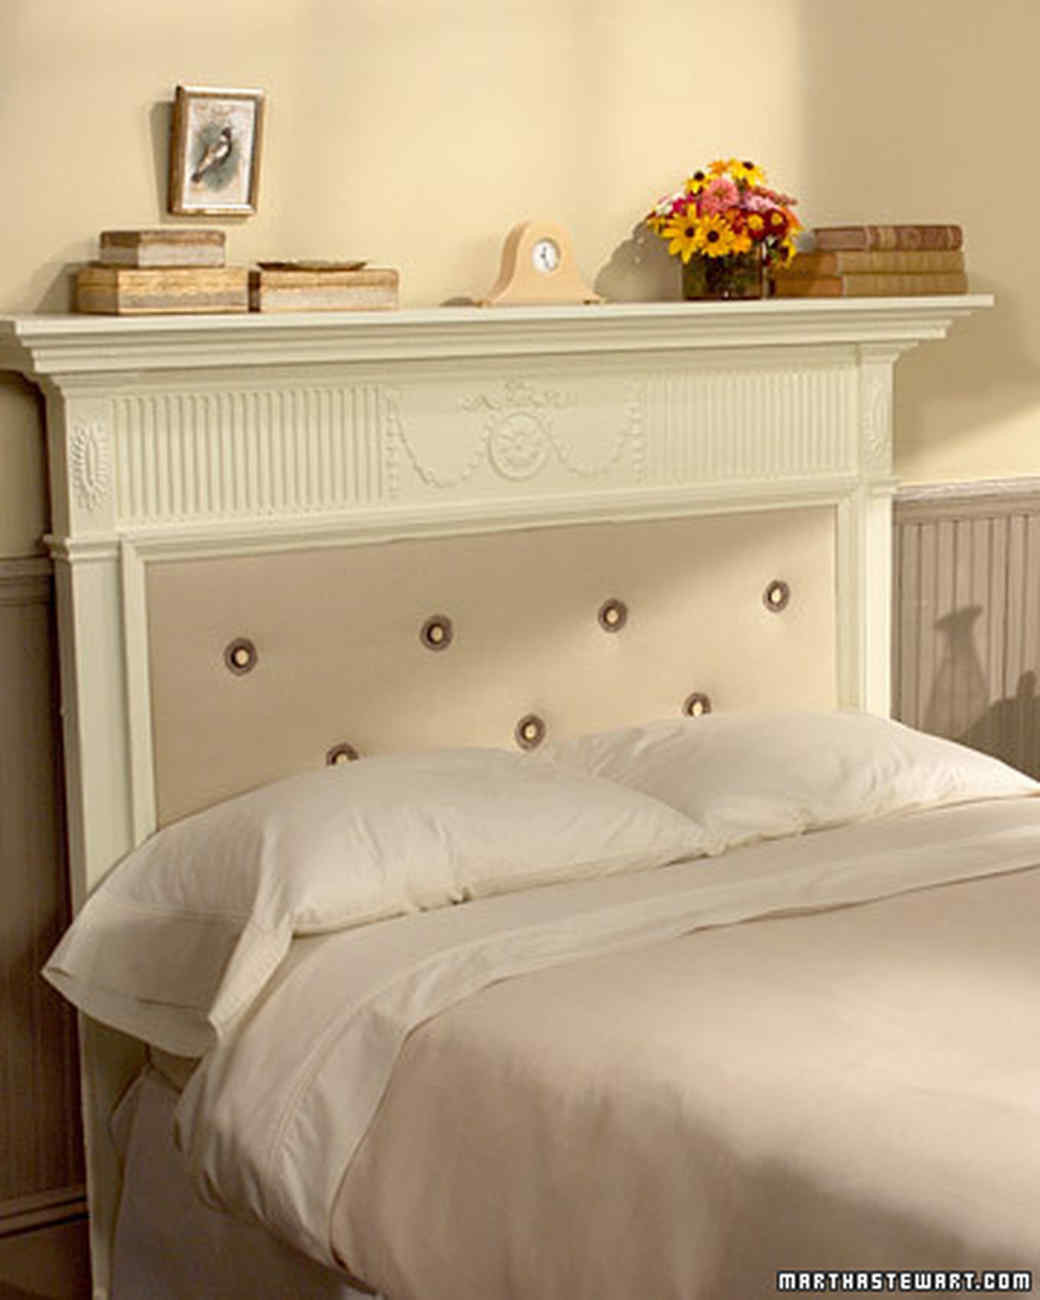 Best ideas about DIY Bed Headboards . Save or Pin DIY Headboard Ideas Give Your Bed a Boost Now.